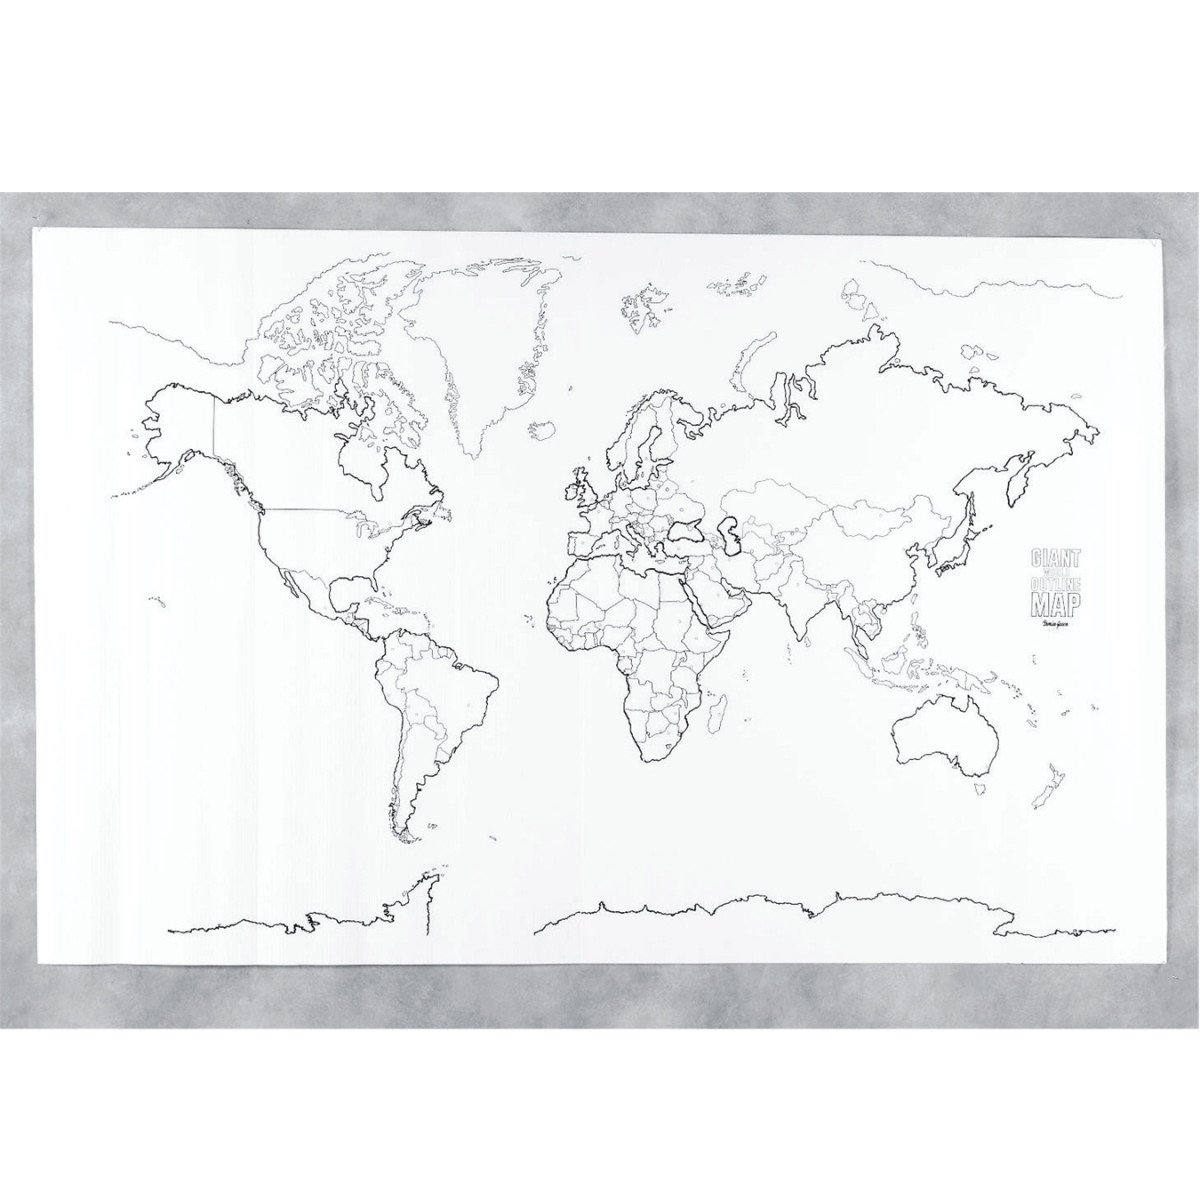 Amazoncom  PAC78770  GIANT WORLD MAP 48IN X 72IN  Wall Maps